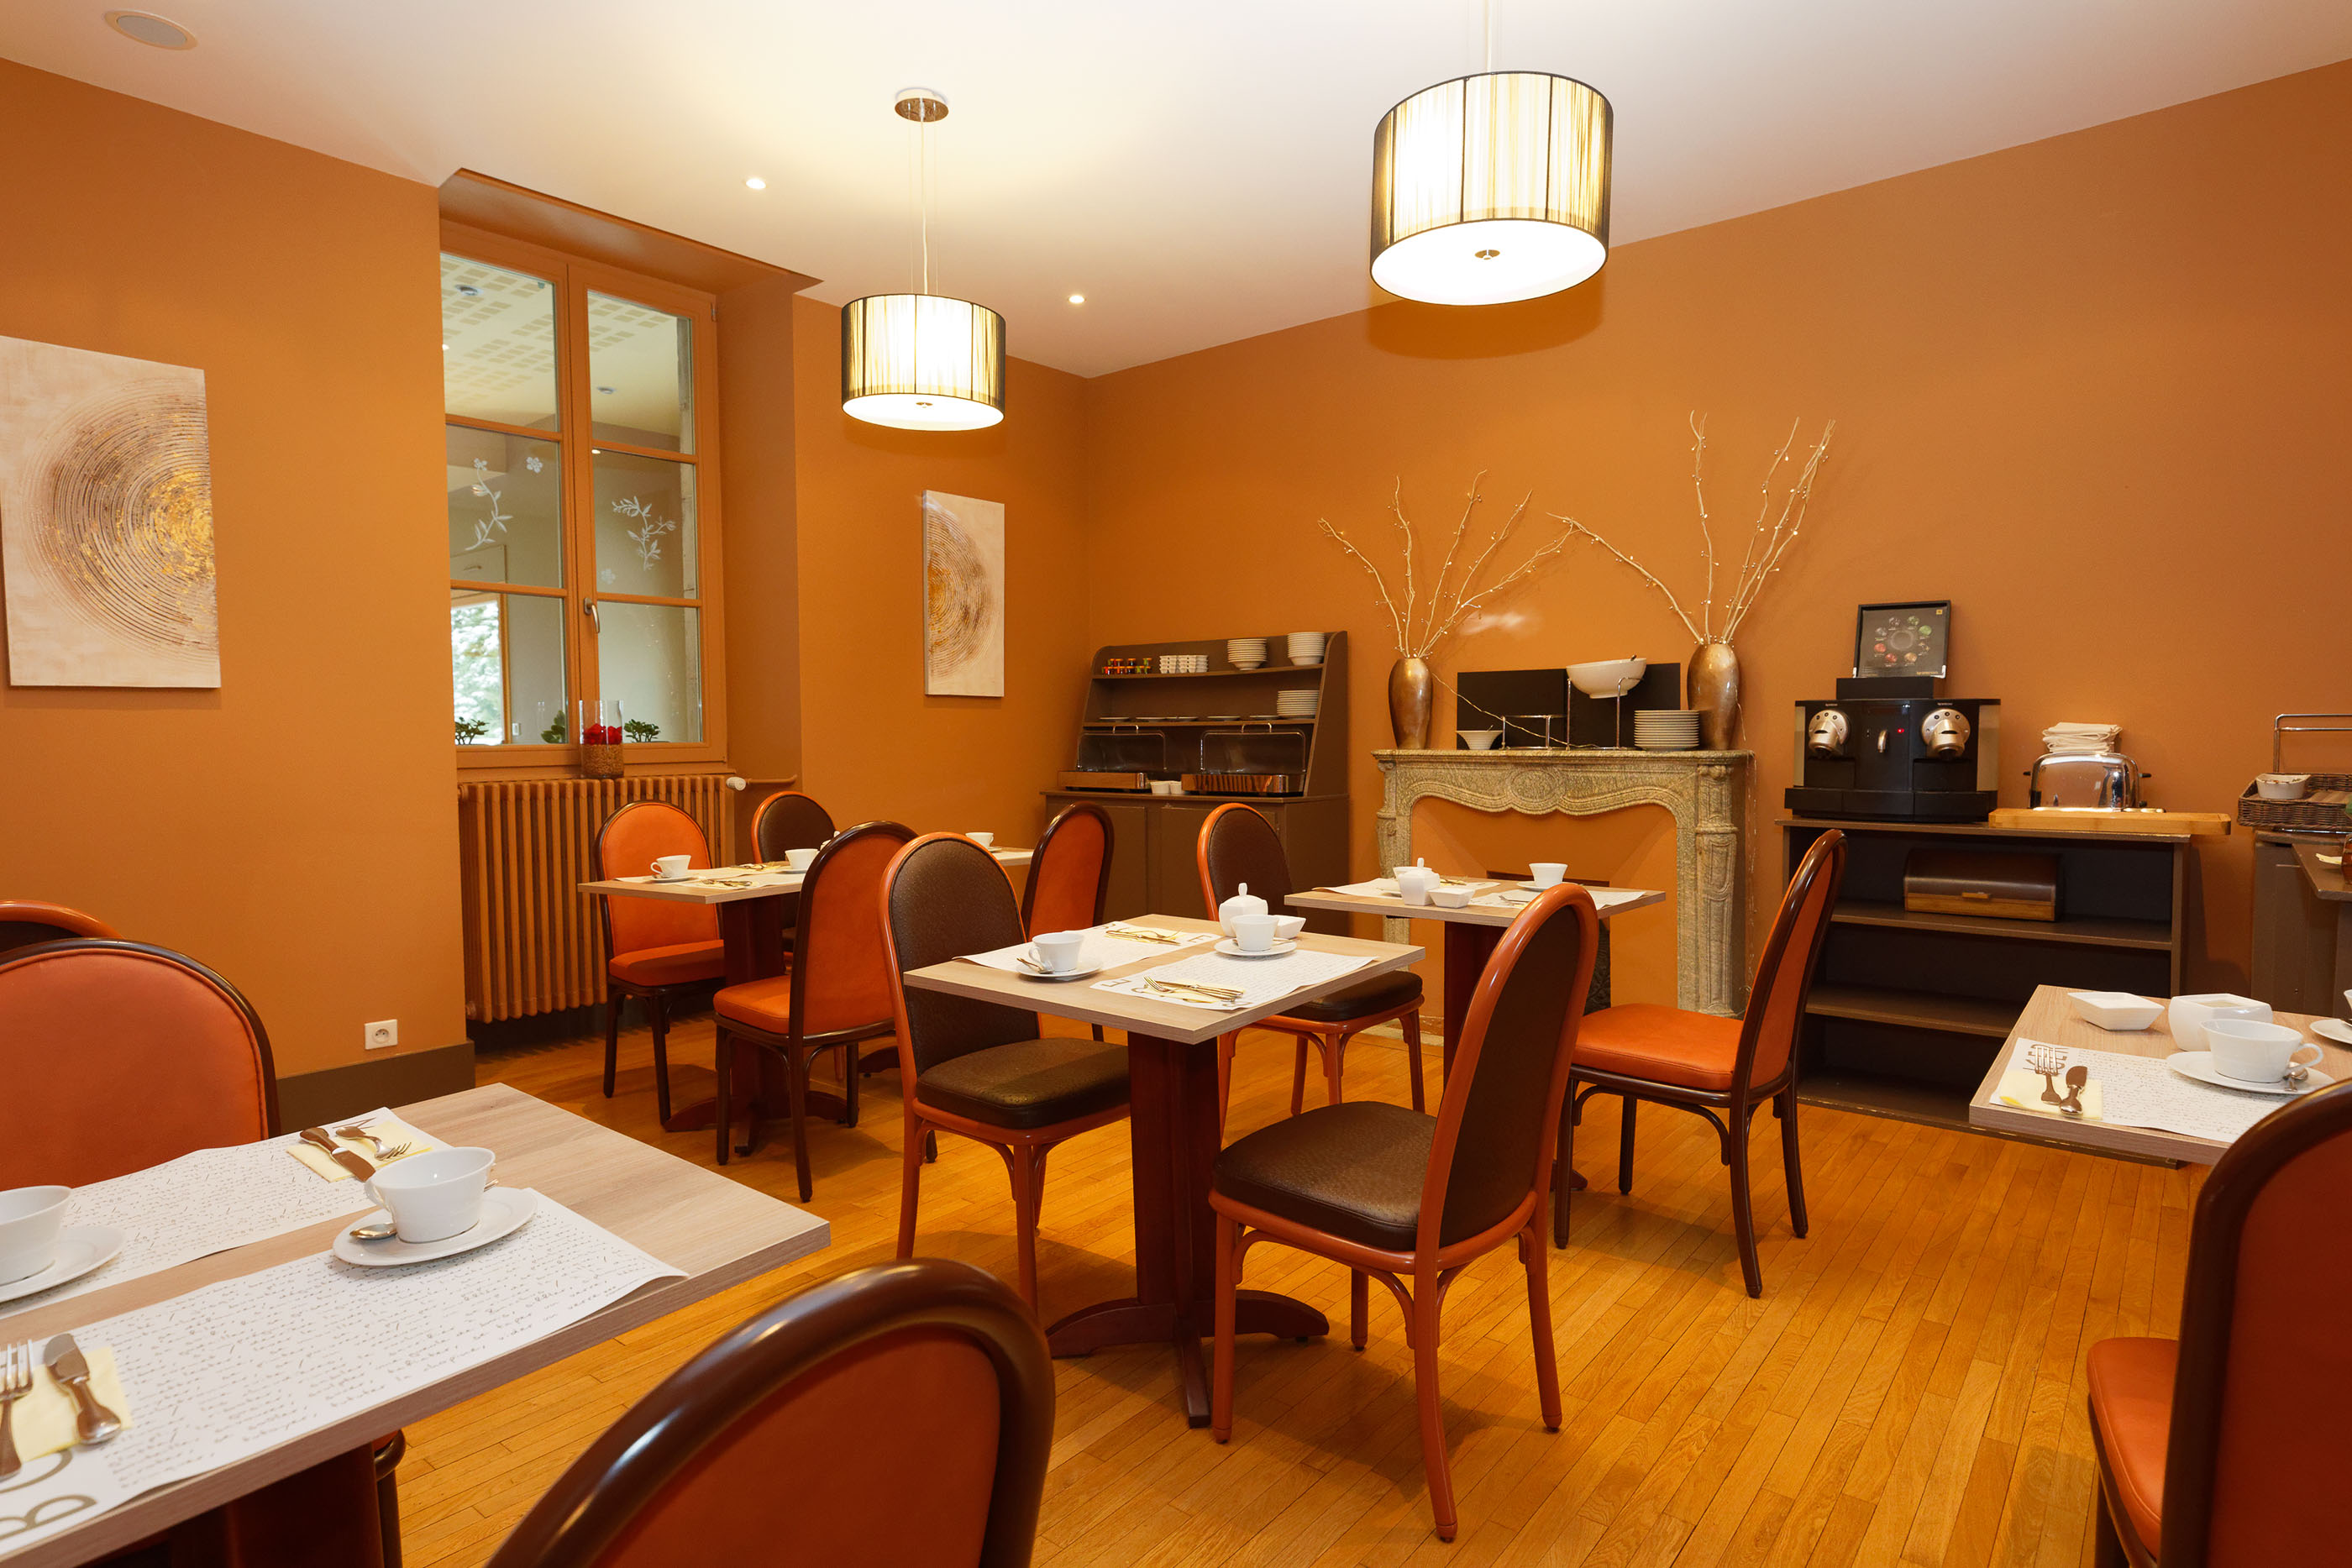 Breakfast room 3-star Hotel and Restaurant in Arbois in the Jura